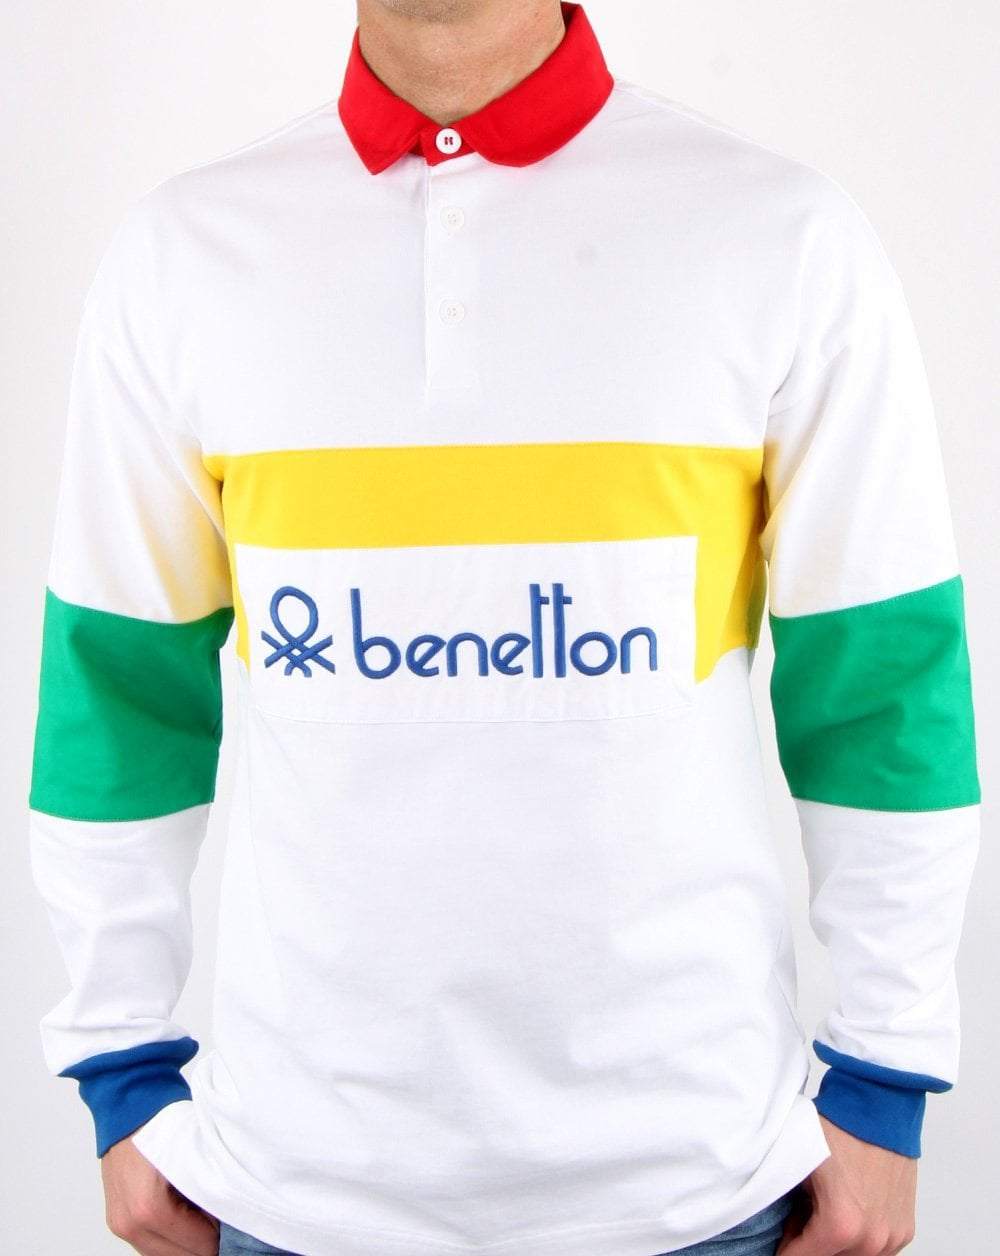 Benetton Rugby Shirt Multi colour